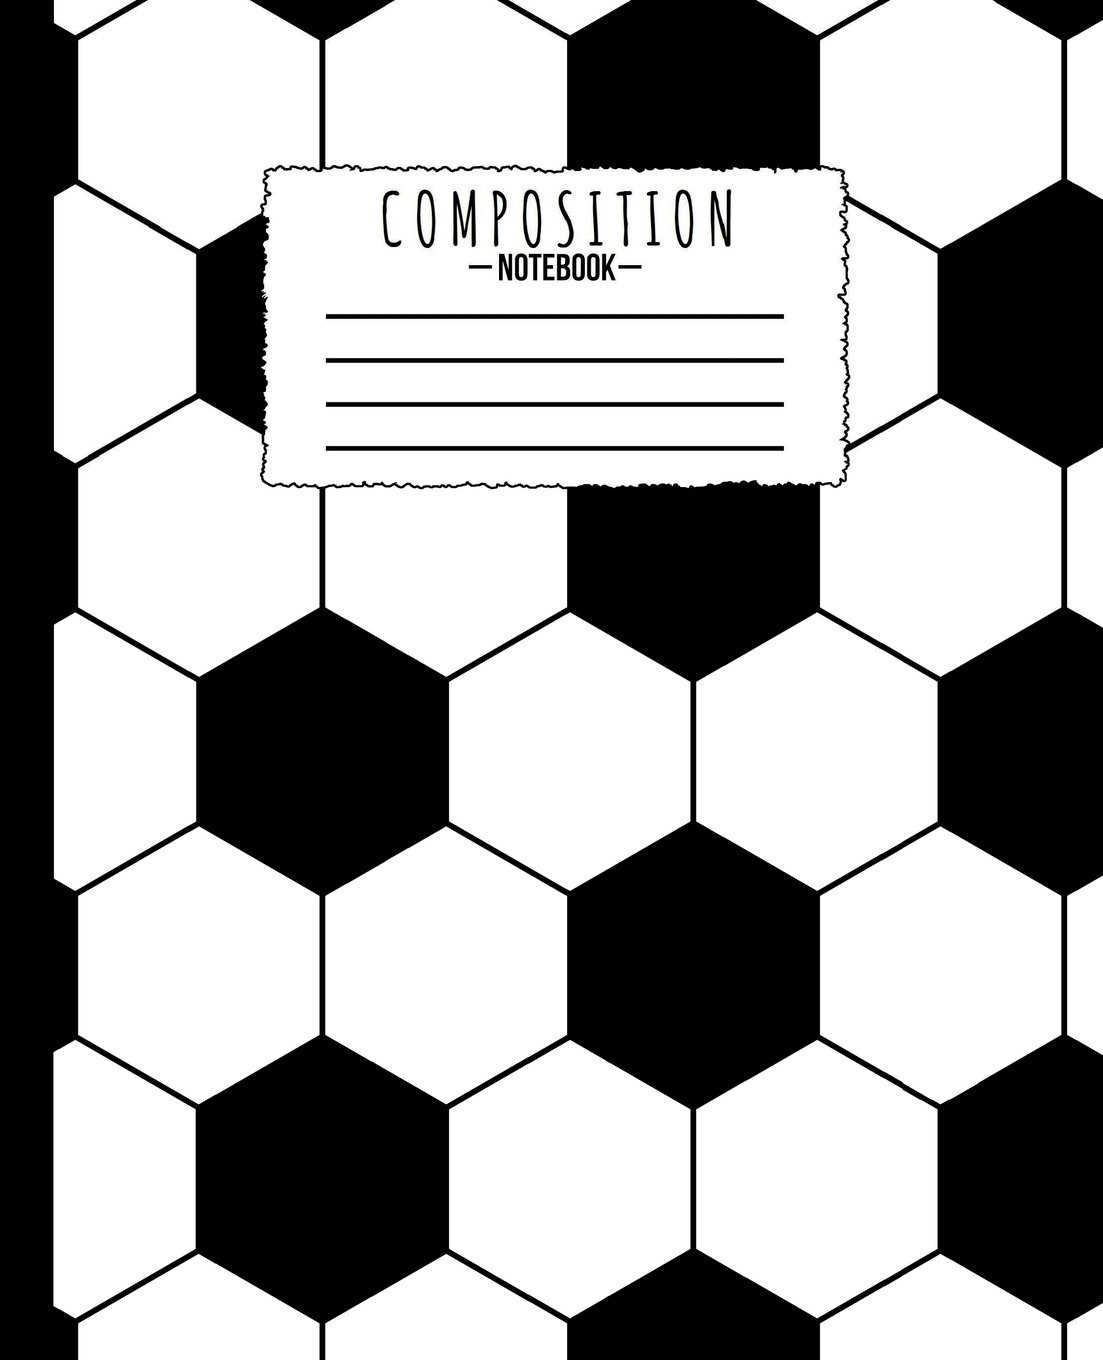 Composition Notebook: Soccer Ball Football Futbol 7.5 x 9.25 in - 110 Pages - Wide Ruled - Black Lined Paper Journal - For Back to School, Classwork, ... Thoughts, Brainstorm Ideas,  Draw, Doodle pdf